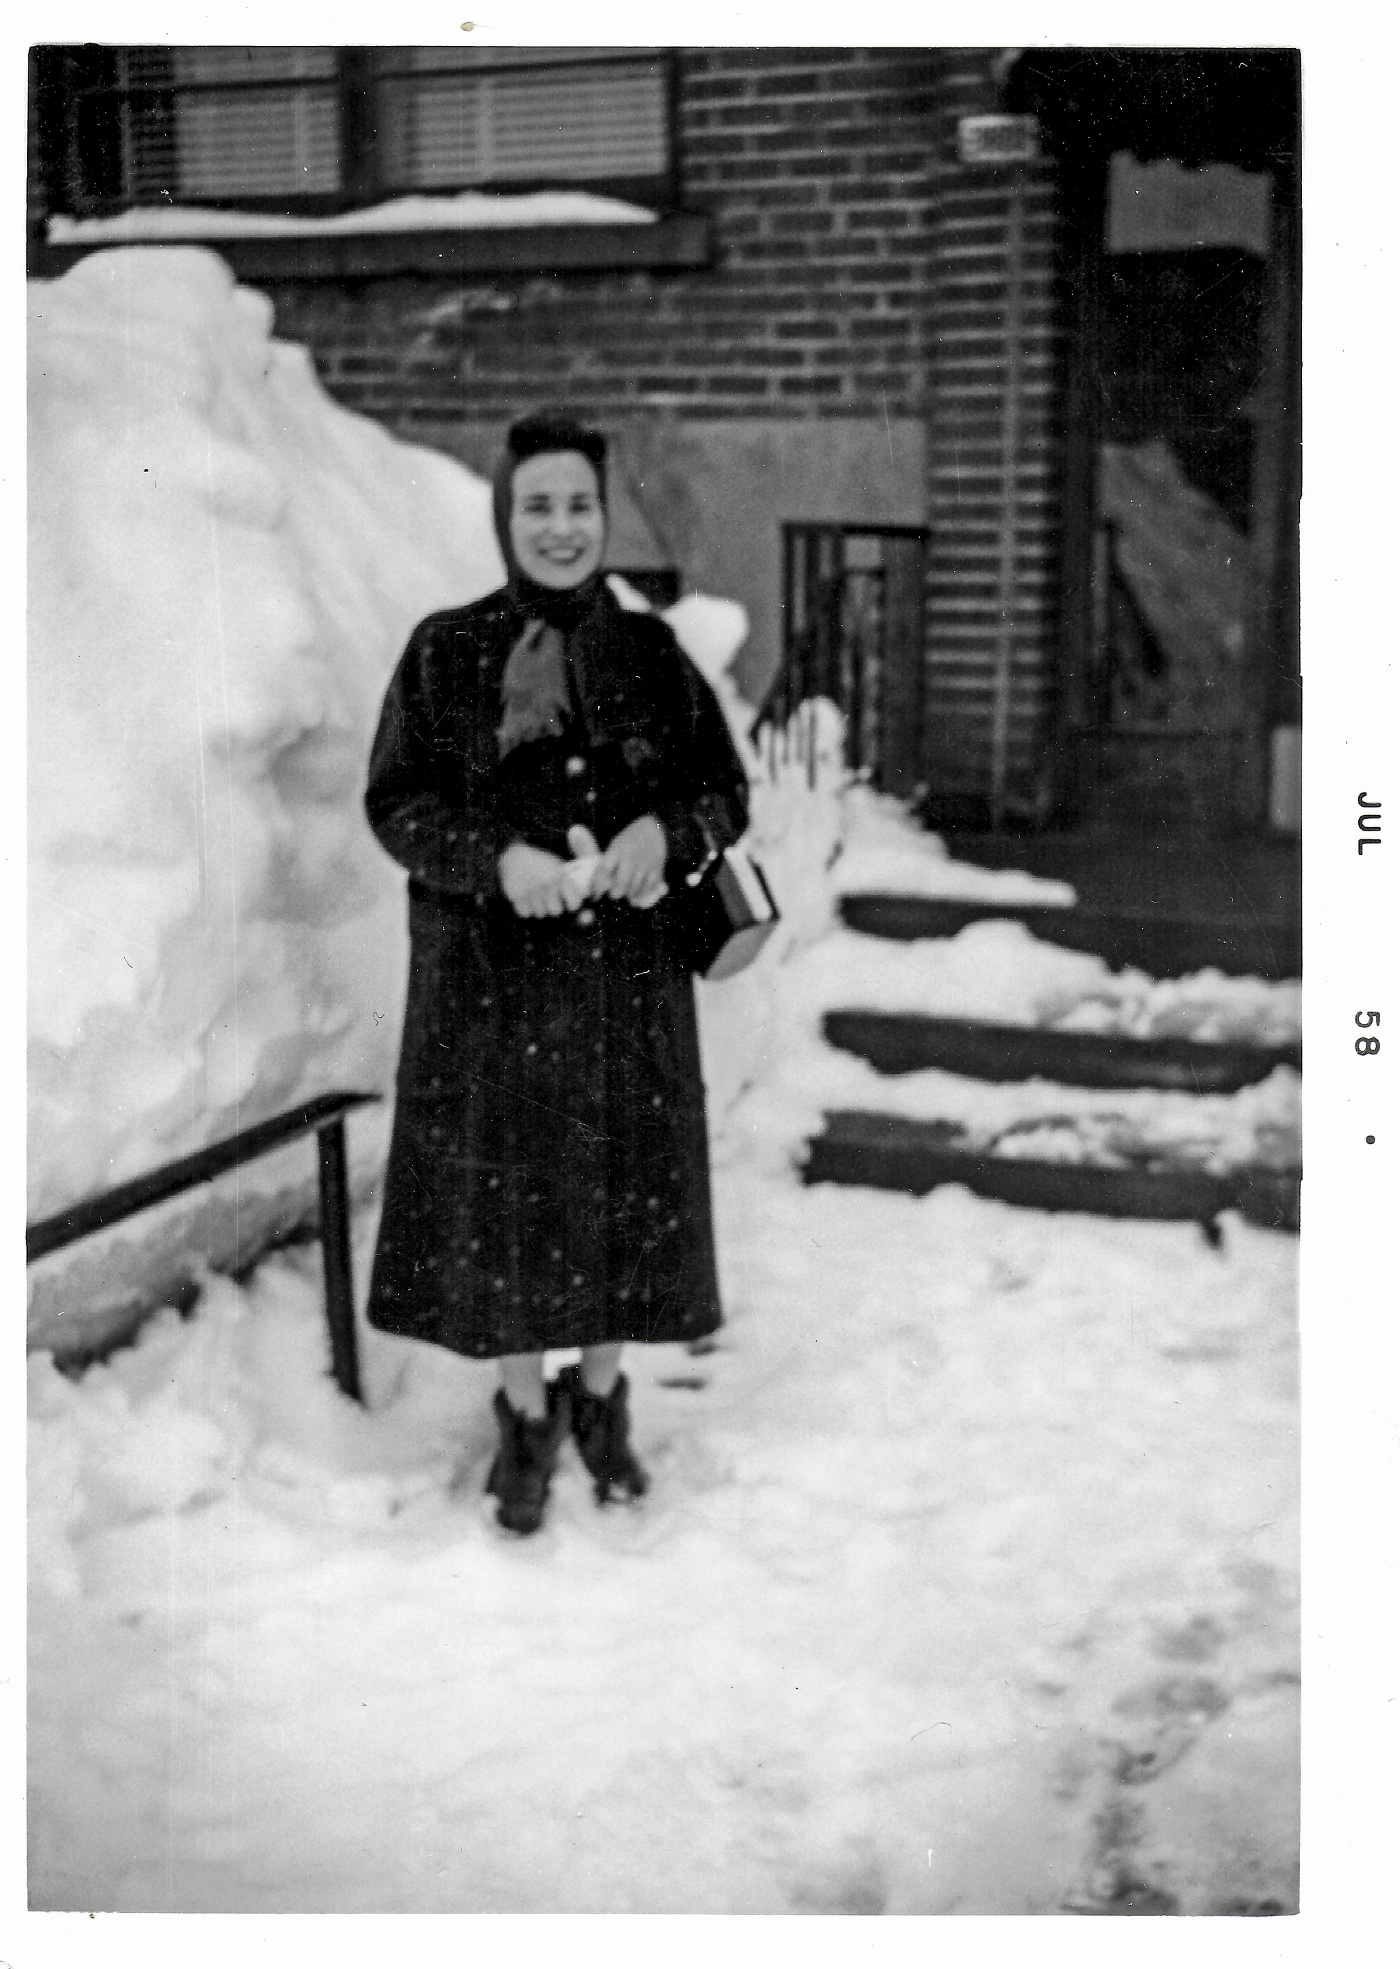 Winter of 1958 Woman posing in snowy landscape. Photo from the Aristea Vallianos archive. Source: Immigrec